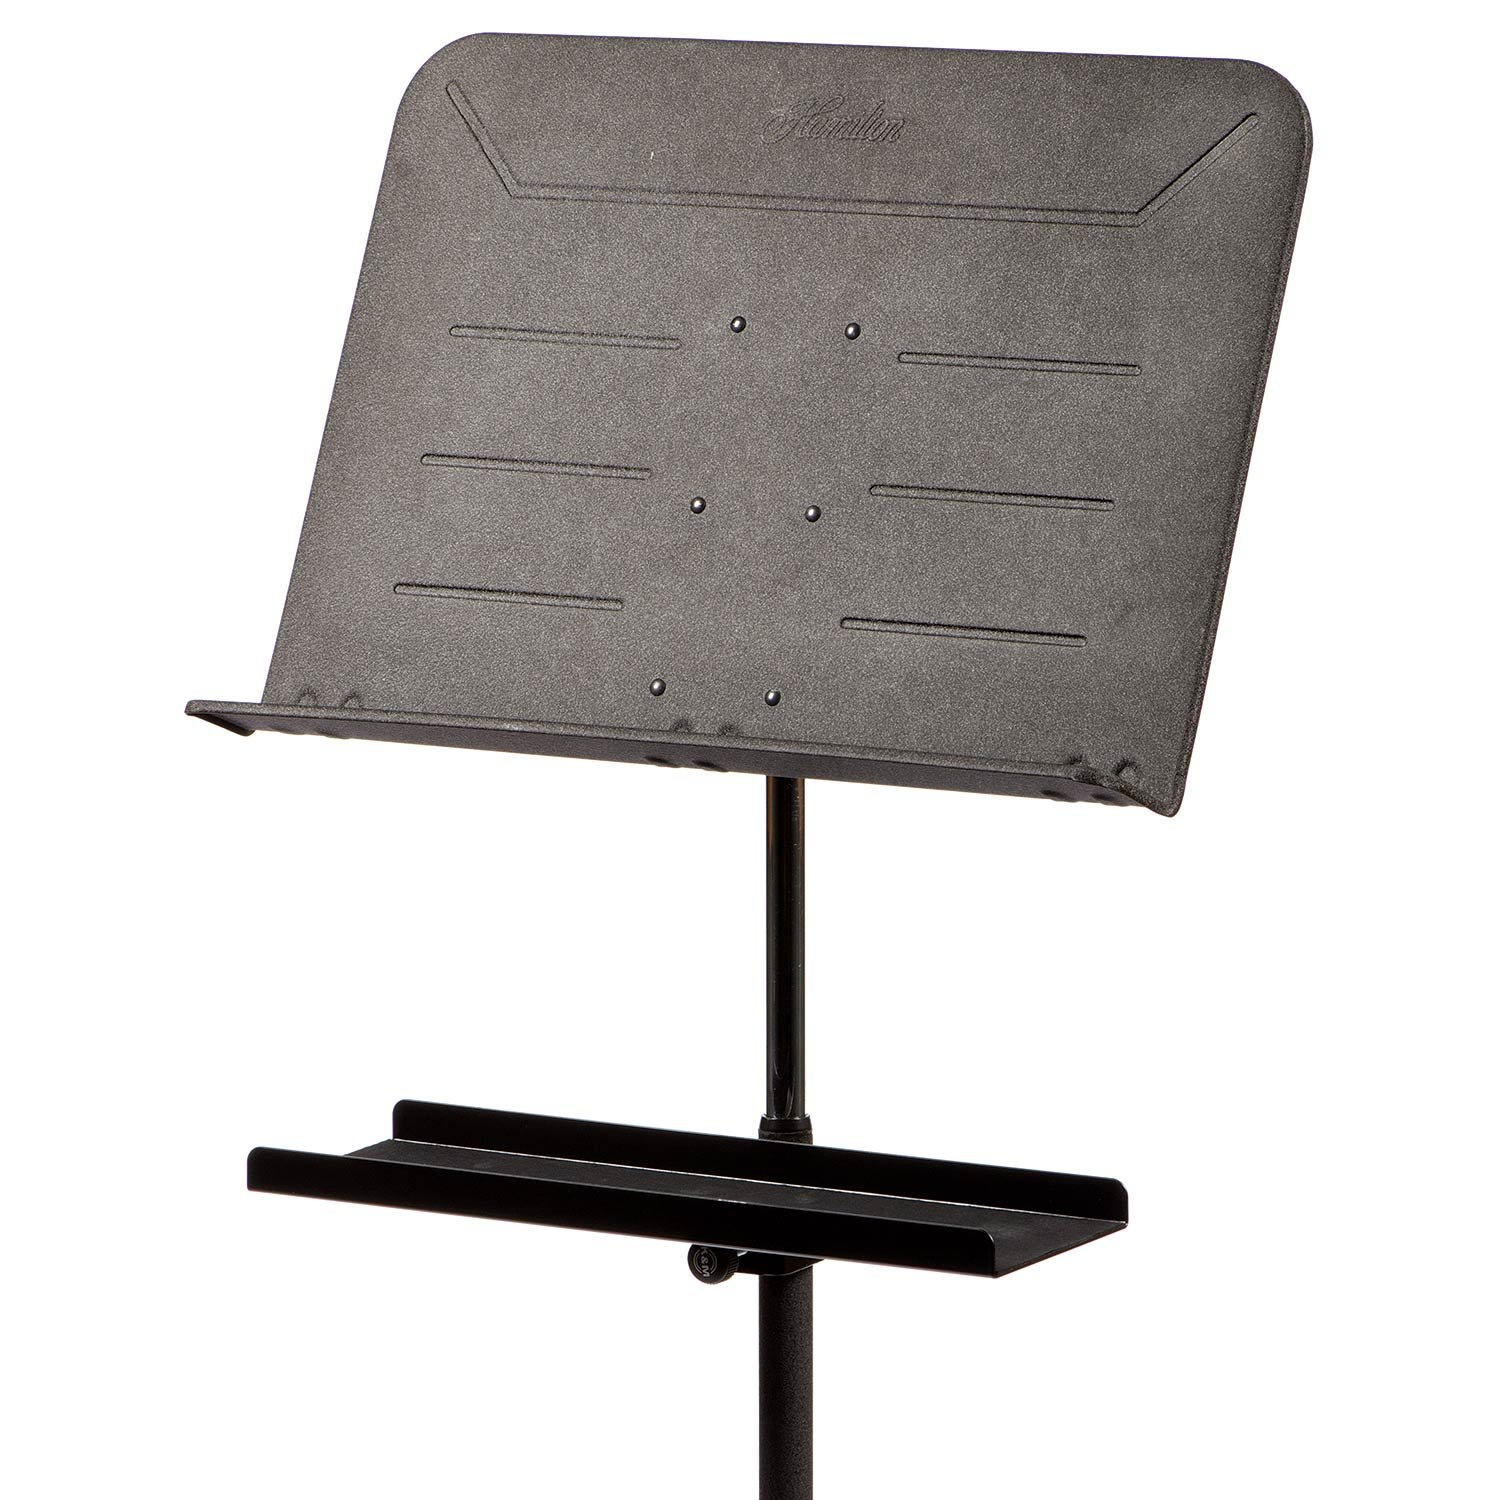 K/&M 12218 Music Sheet And Instrument Tray